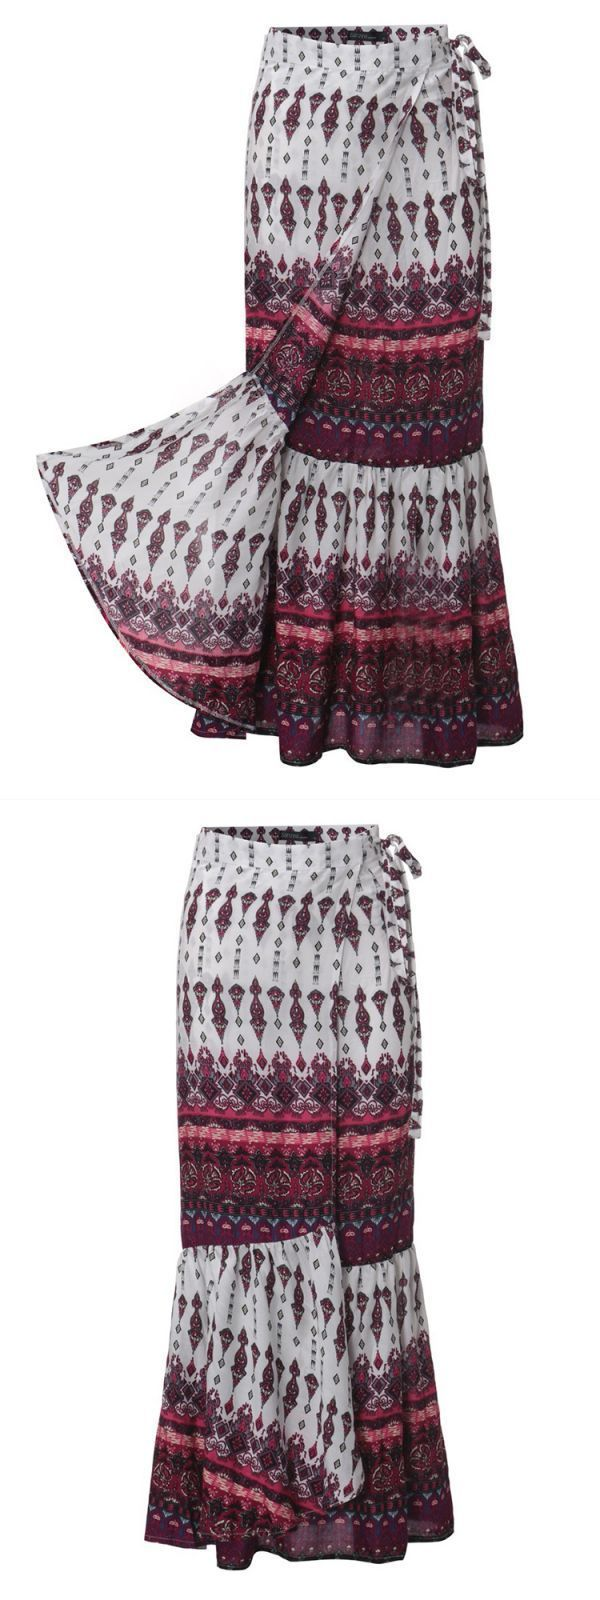 6 panel skirts bohemian women split printed skirts high waist beach wrap long skirts #$5 #skirts #c #amp; #m #skirts #puffball #skirts #80s #skirts #below #the #knee